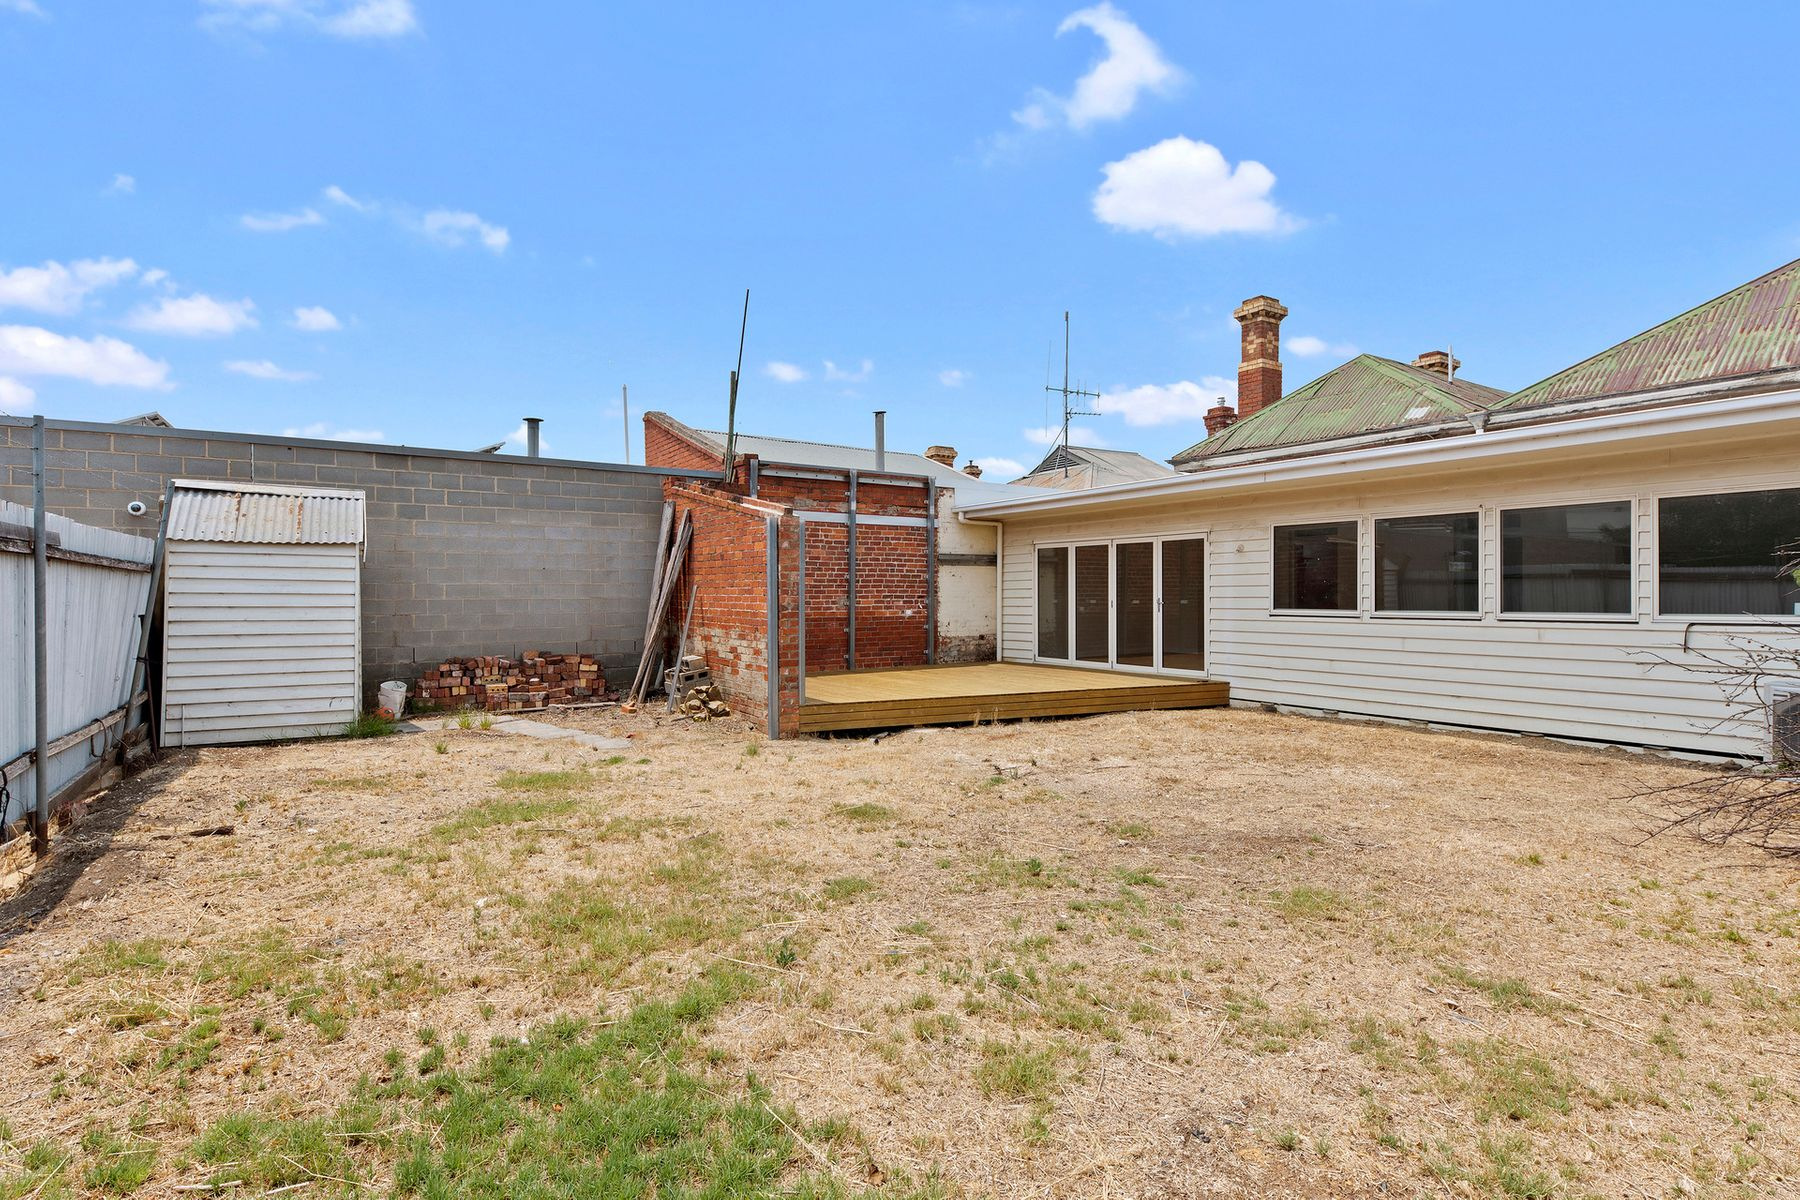 50 Wills Street, Bendigo, VIC 3550